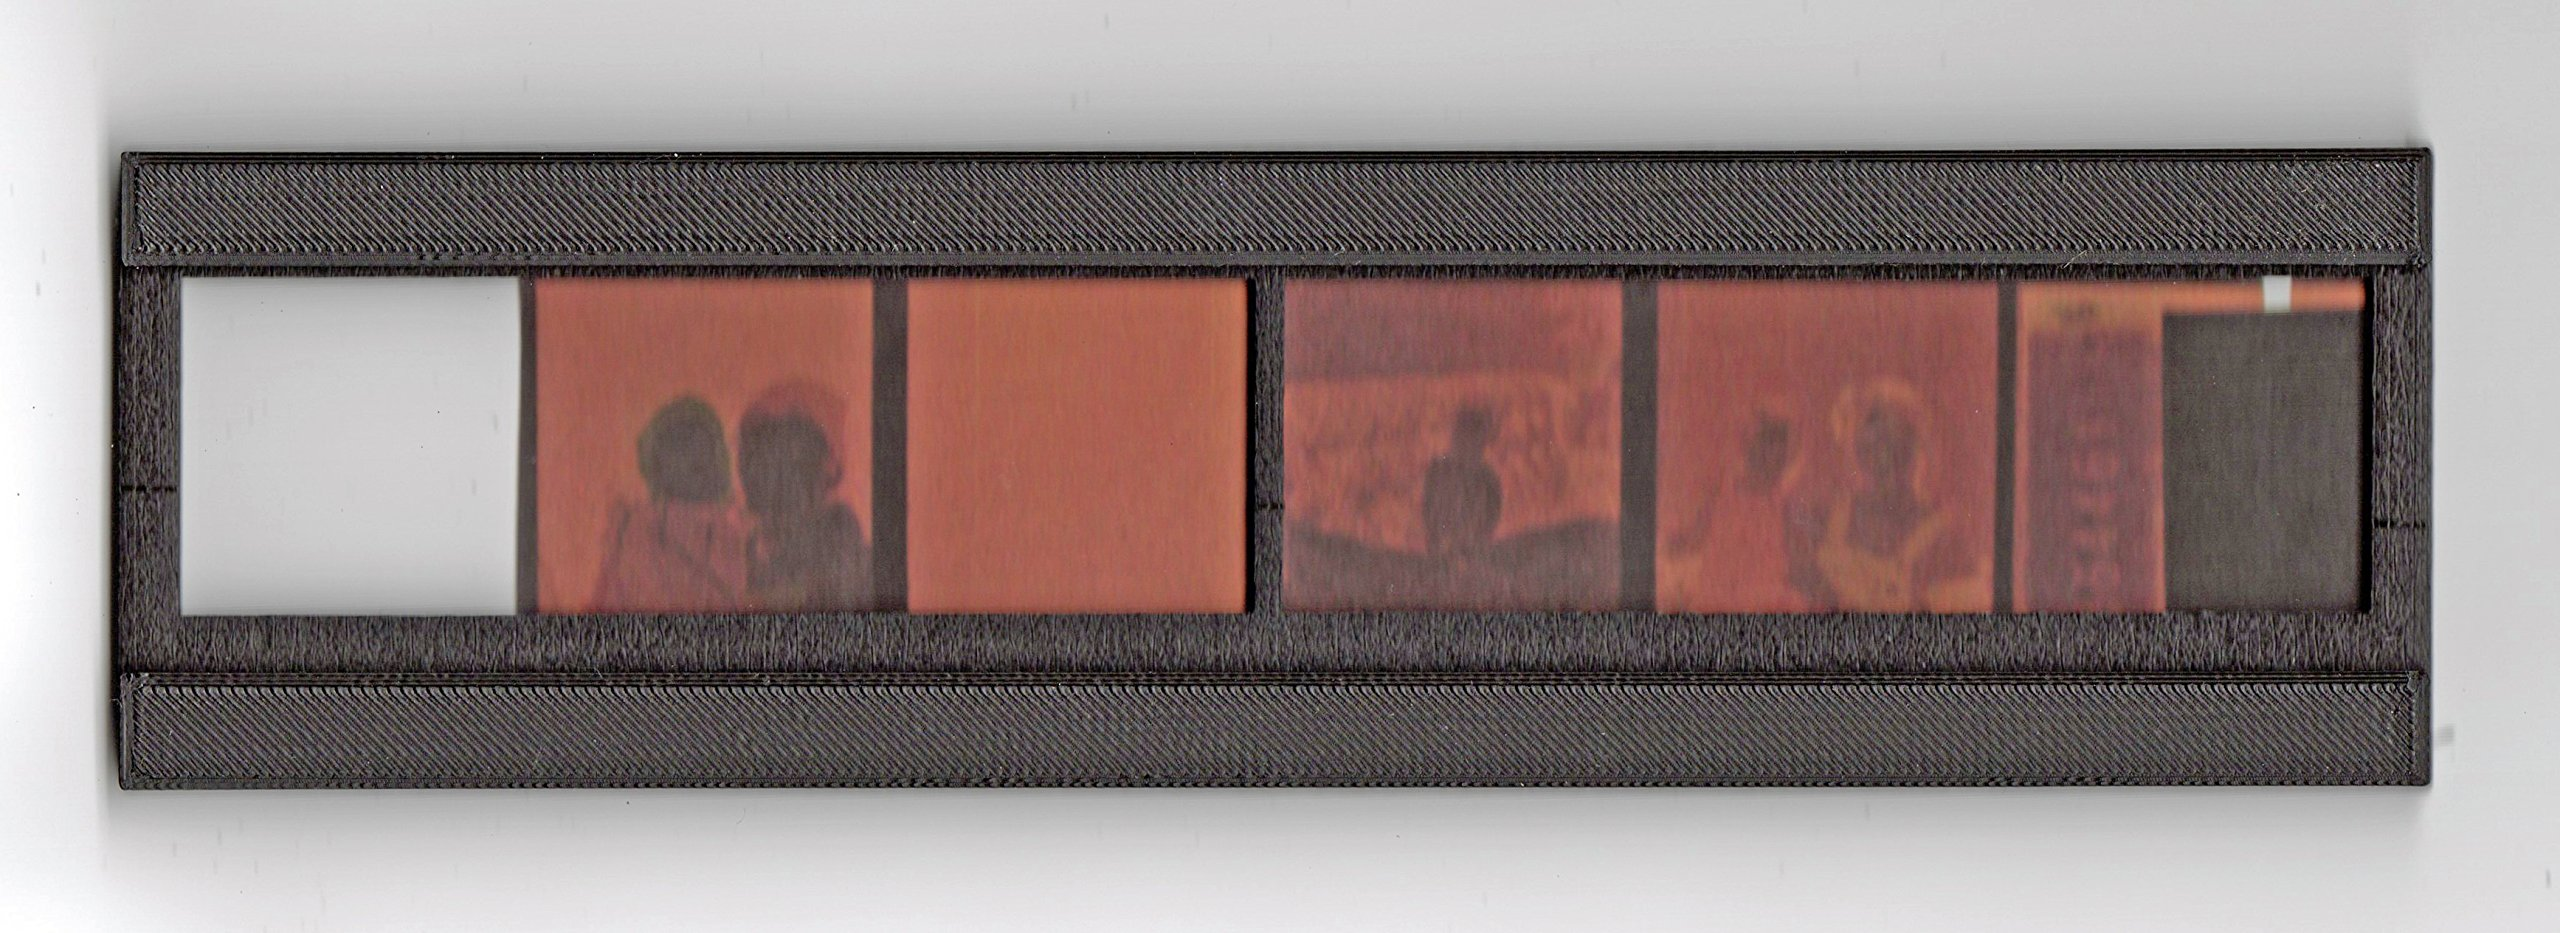 126 Format Negative Holder Compatible with Canon CanoScan Film scanners by Negative Solutions Film Holders